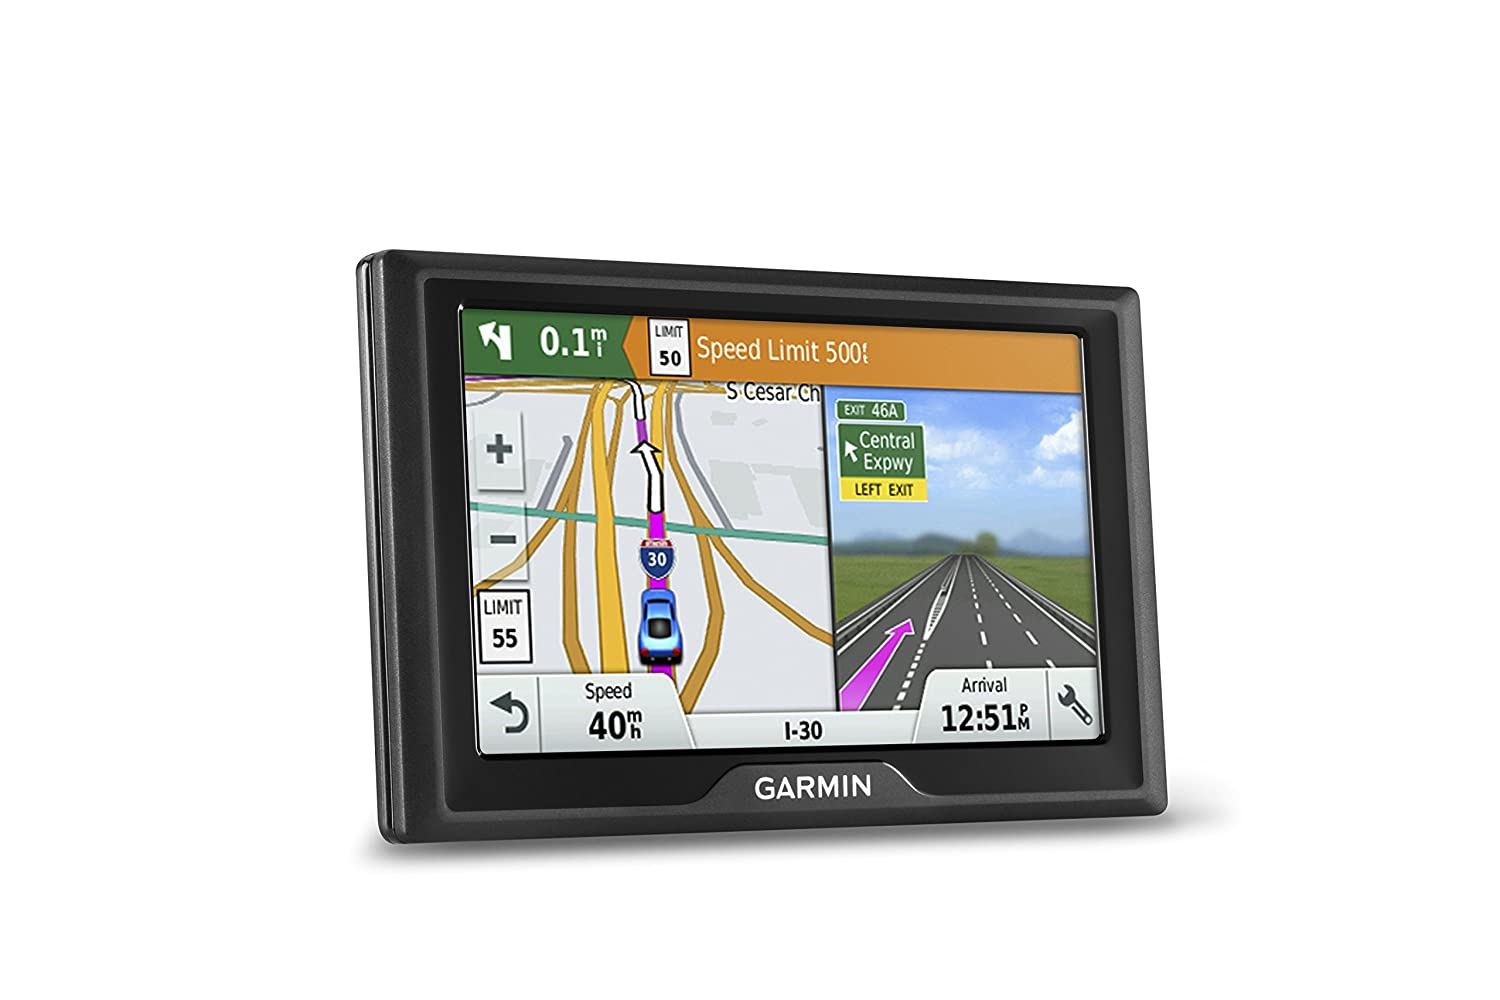 Garmin Drive 50 USA LM GPS Navigator System with Lifetime Maps, Spoken Turn-By-Turn Directions, Direct Access, Driver Alerts, and Foursquare Data, Renewed